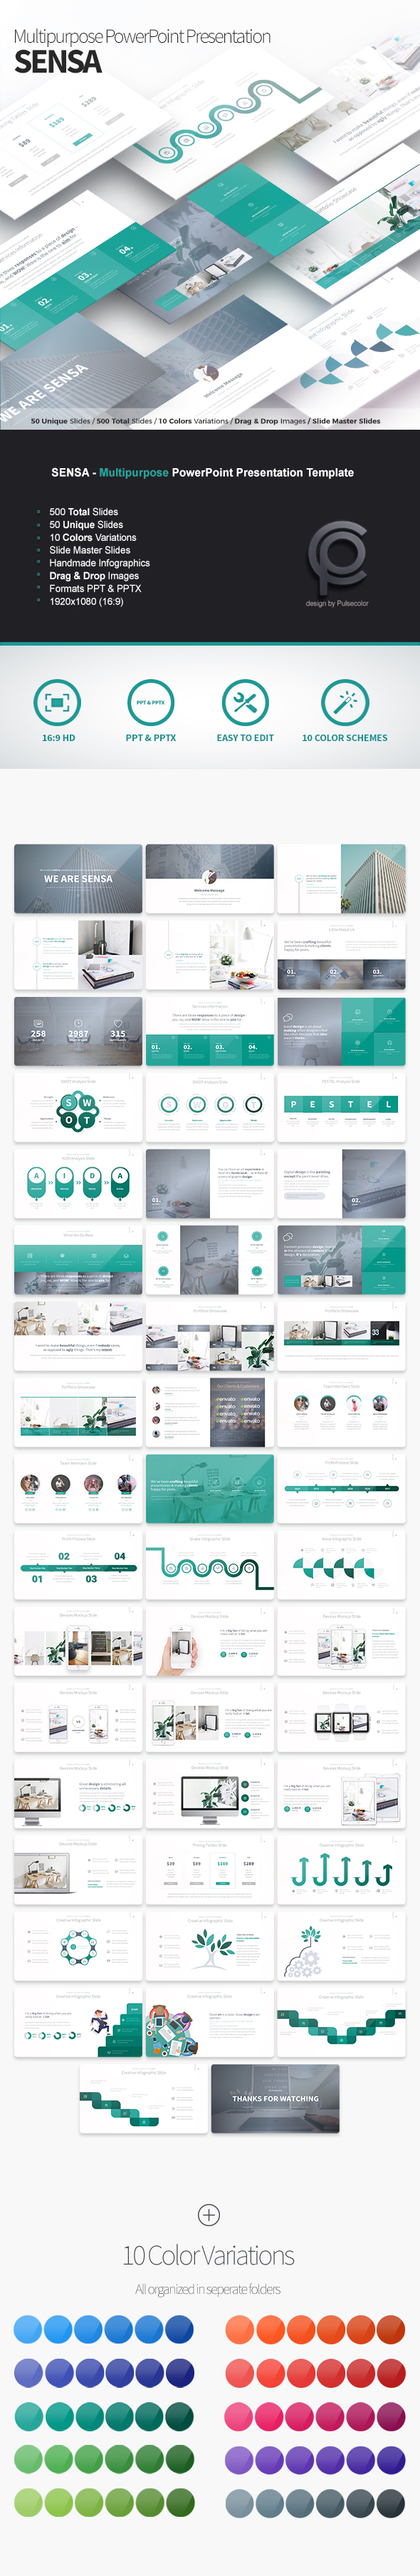 Sensa - Multipurpose PowerPoint Presentation Template - Business PowerPoint Templates